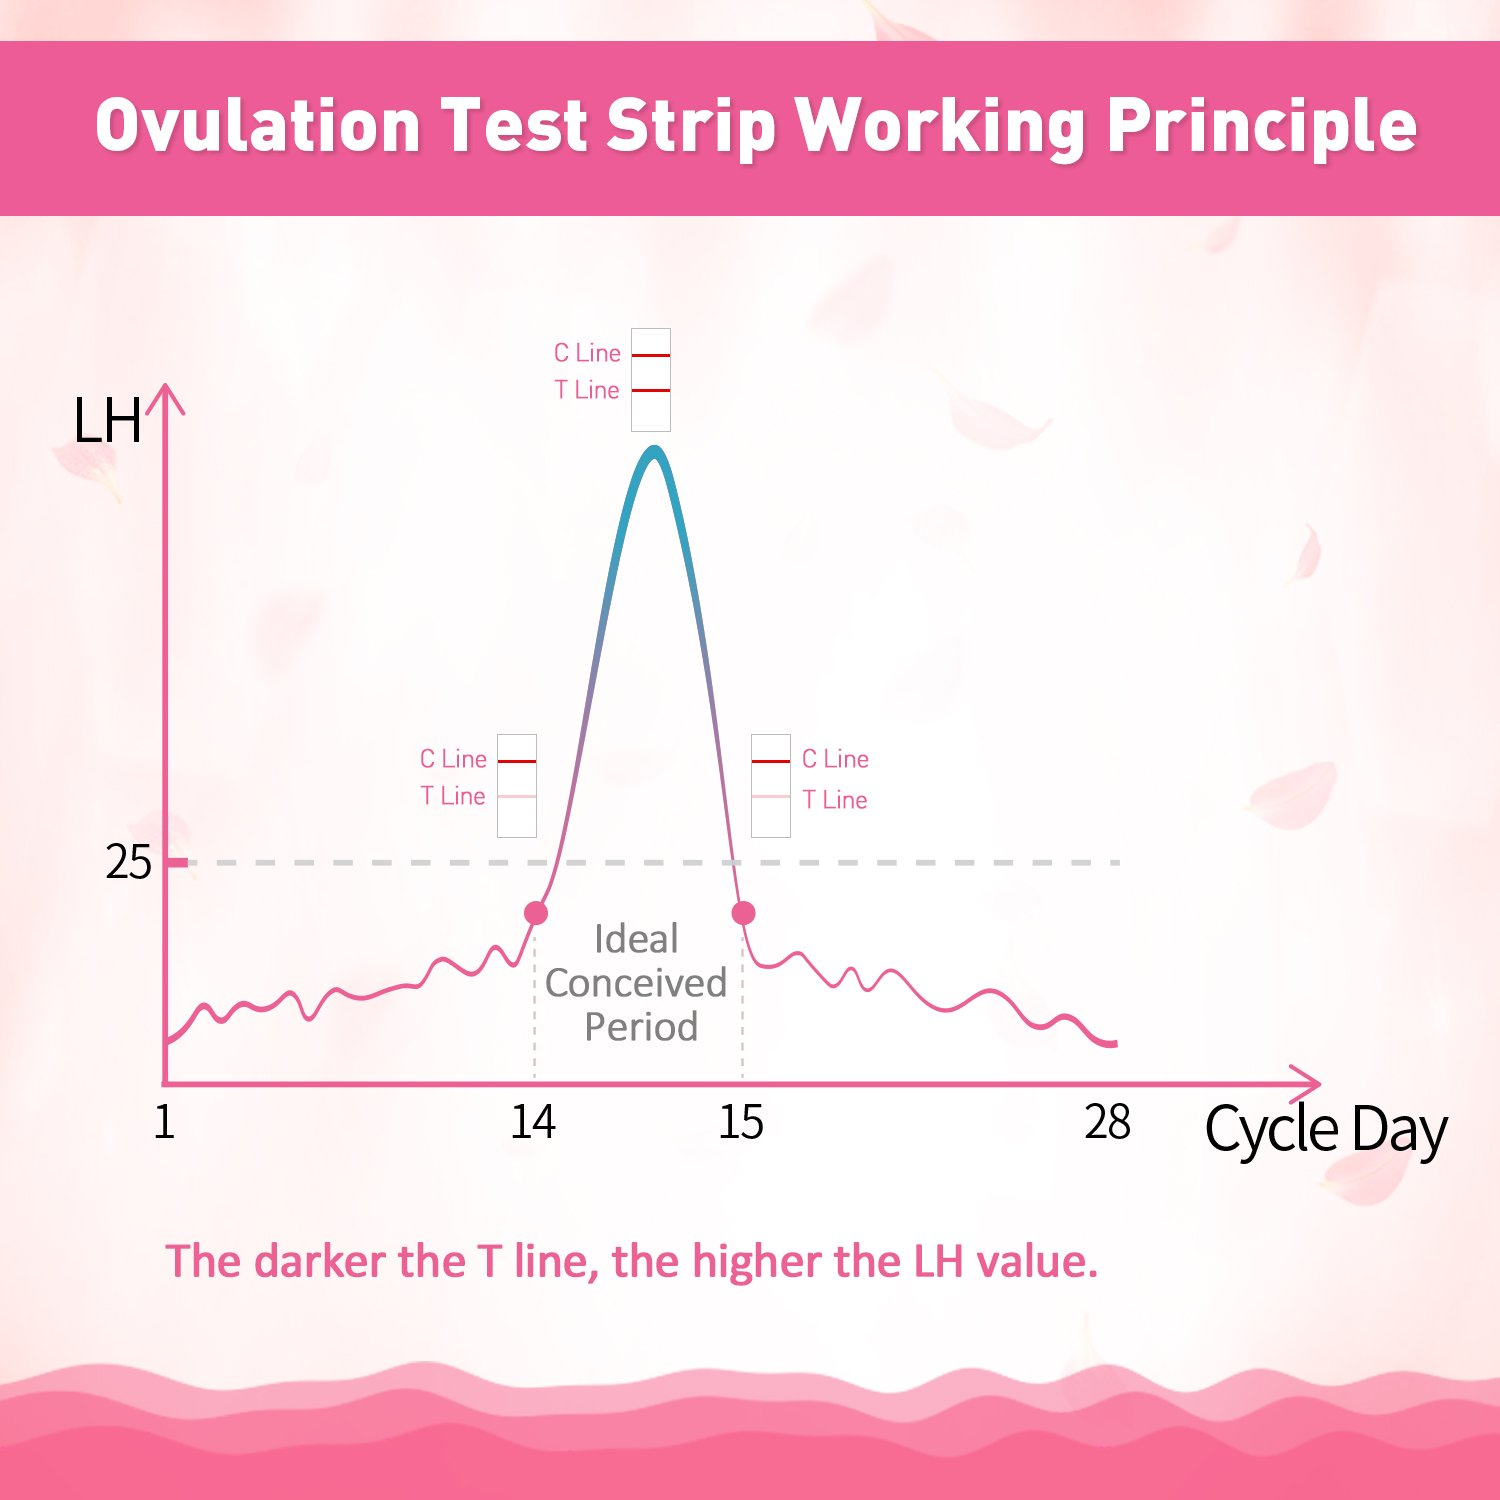 Ovulation Test Strips and Pregnancy Test Strips Combo, Sensitive and Accurate Ovulation Predictor Kit, One Step Urine Fertility Test Strip, Reliable Ovulation Test Kit(50LH+20HCG) by Beanco Tech (Image #8)